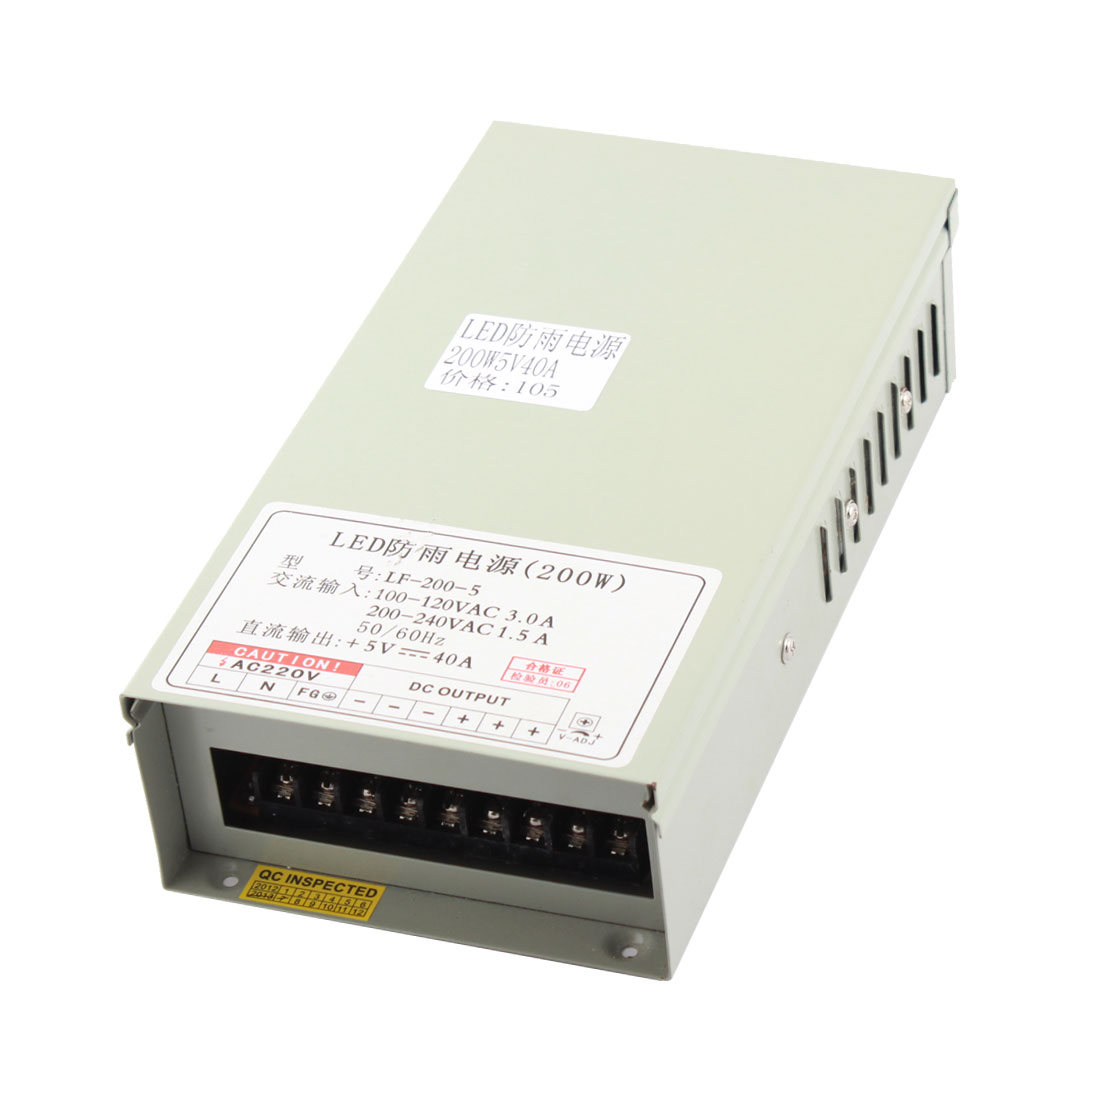 AC 100-120V to DC 5V 40A 200W Switching Power Supply for LED Strip Light